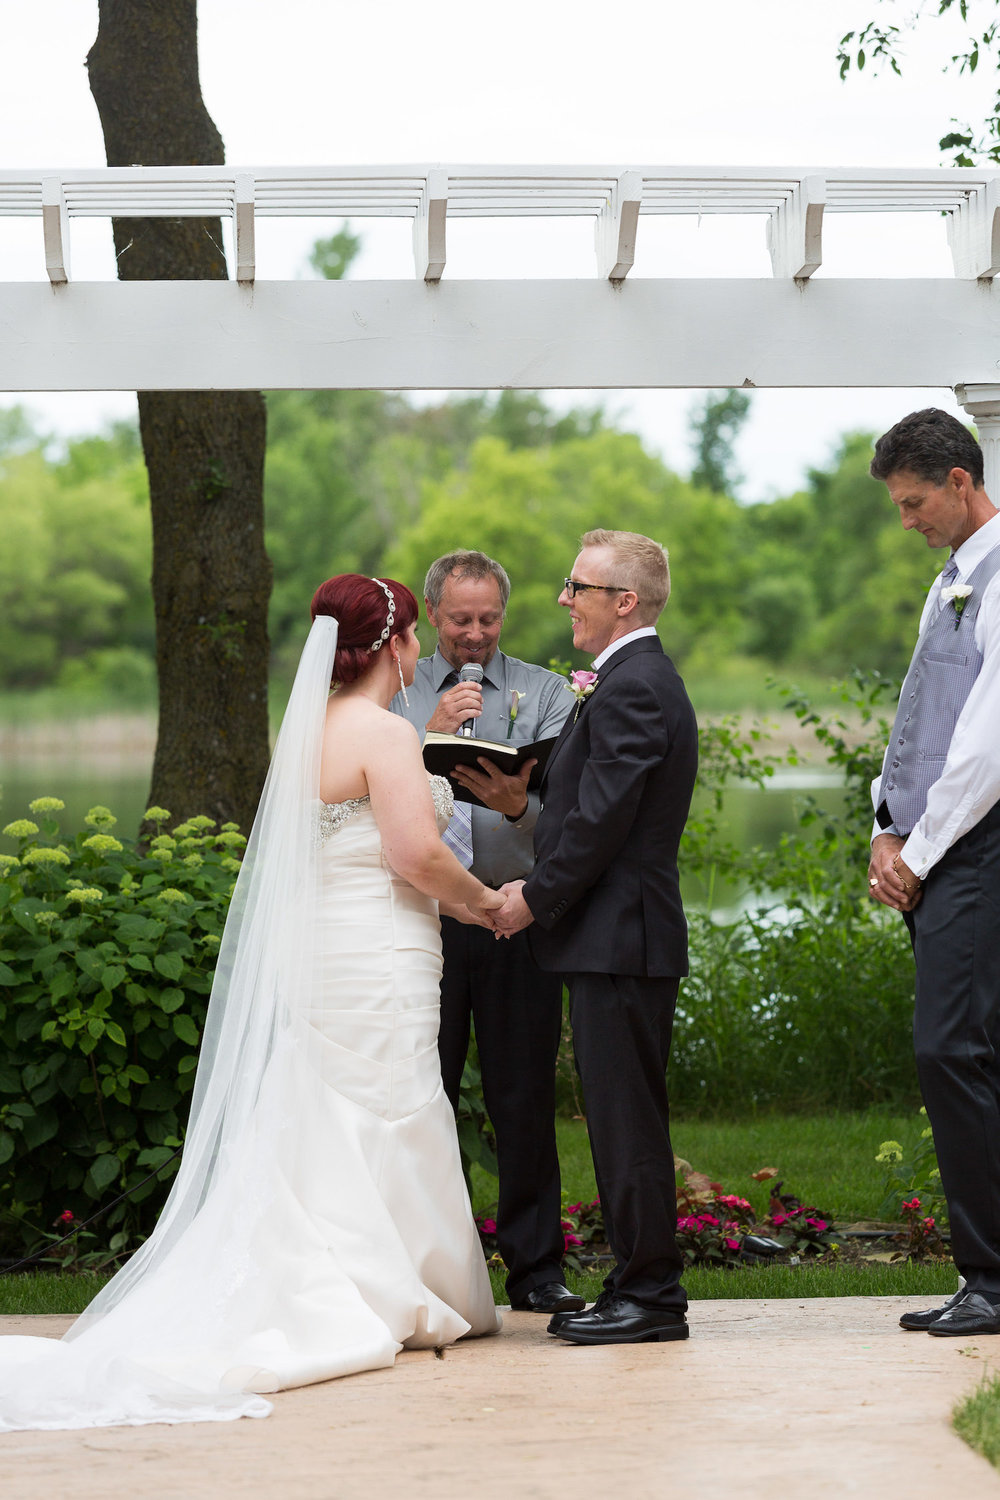 Cindyrella's Garden outdoor ceremony by the lake with a redhead bride, bride hair piece